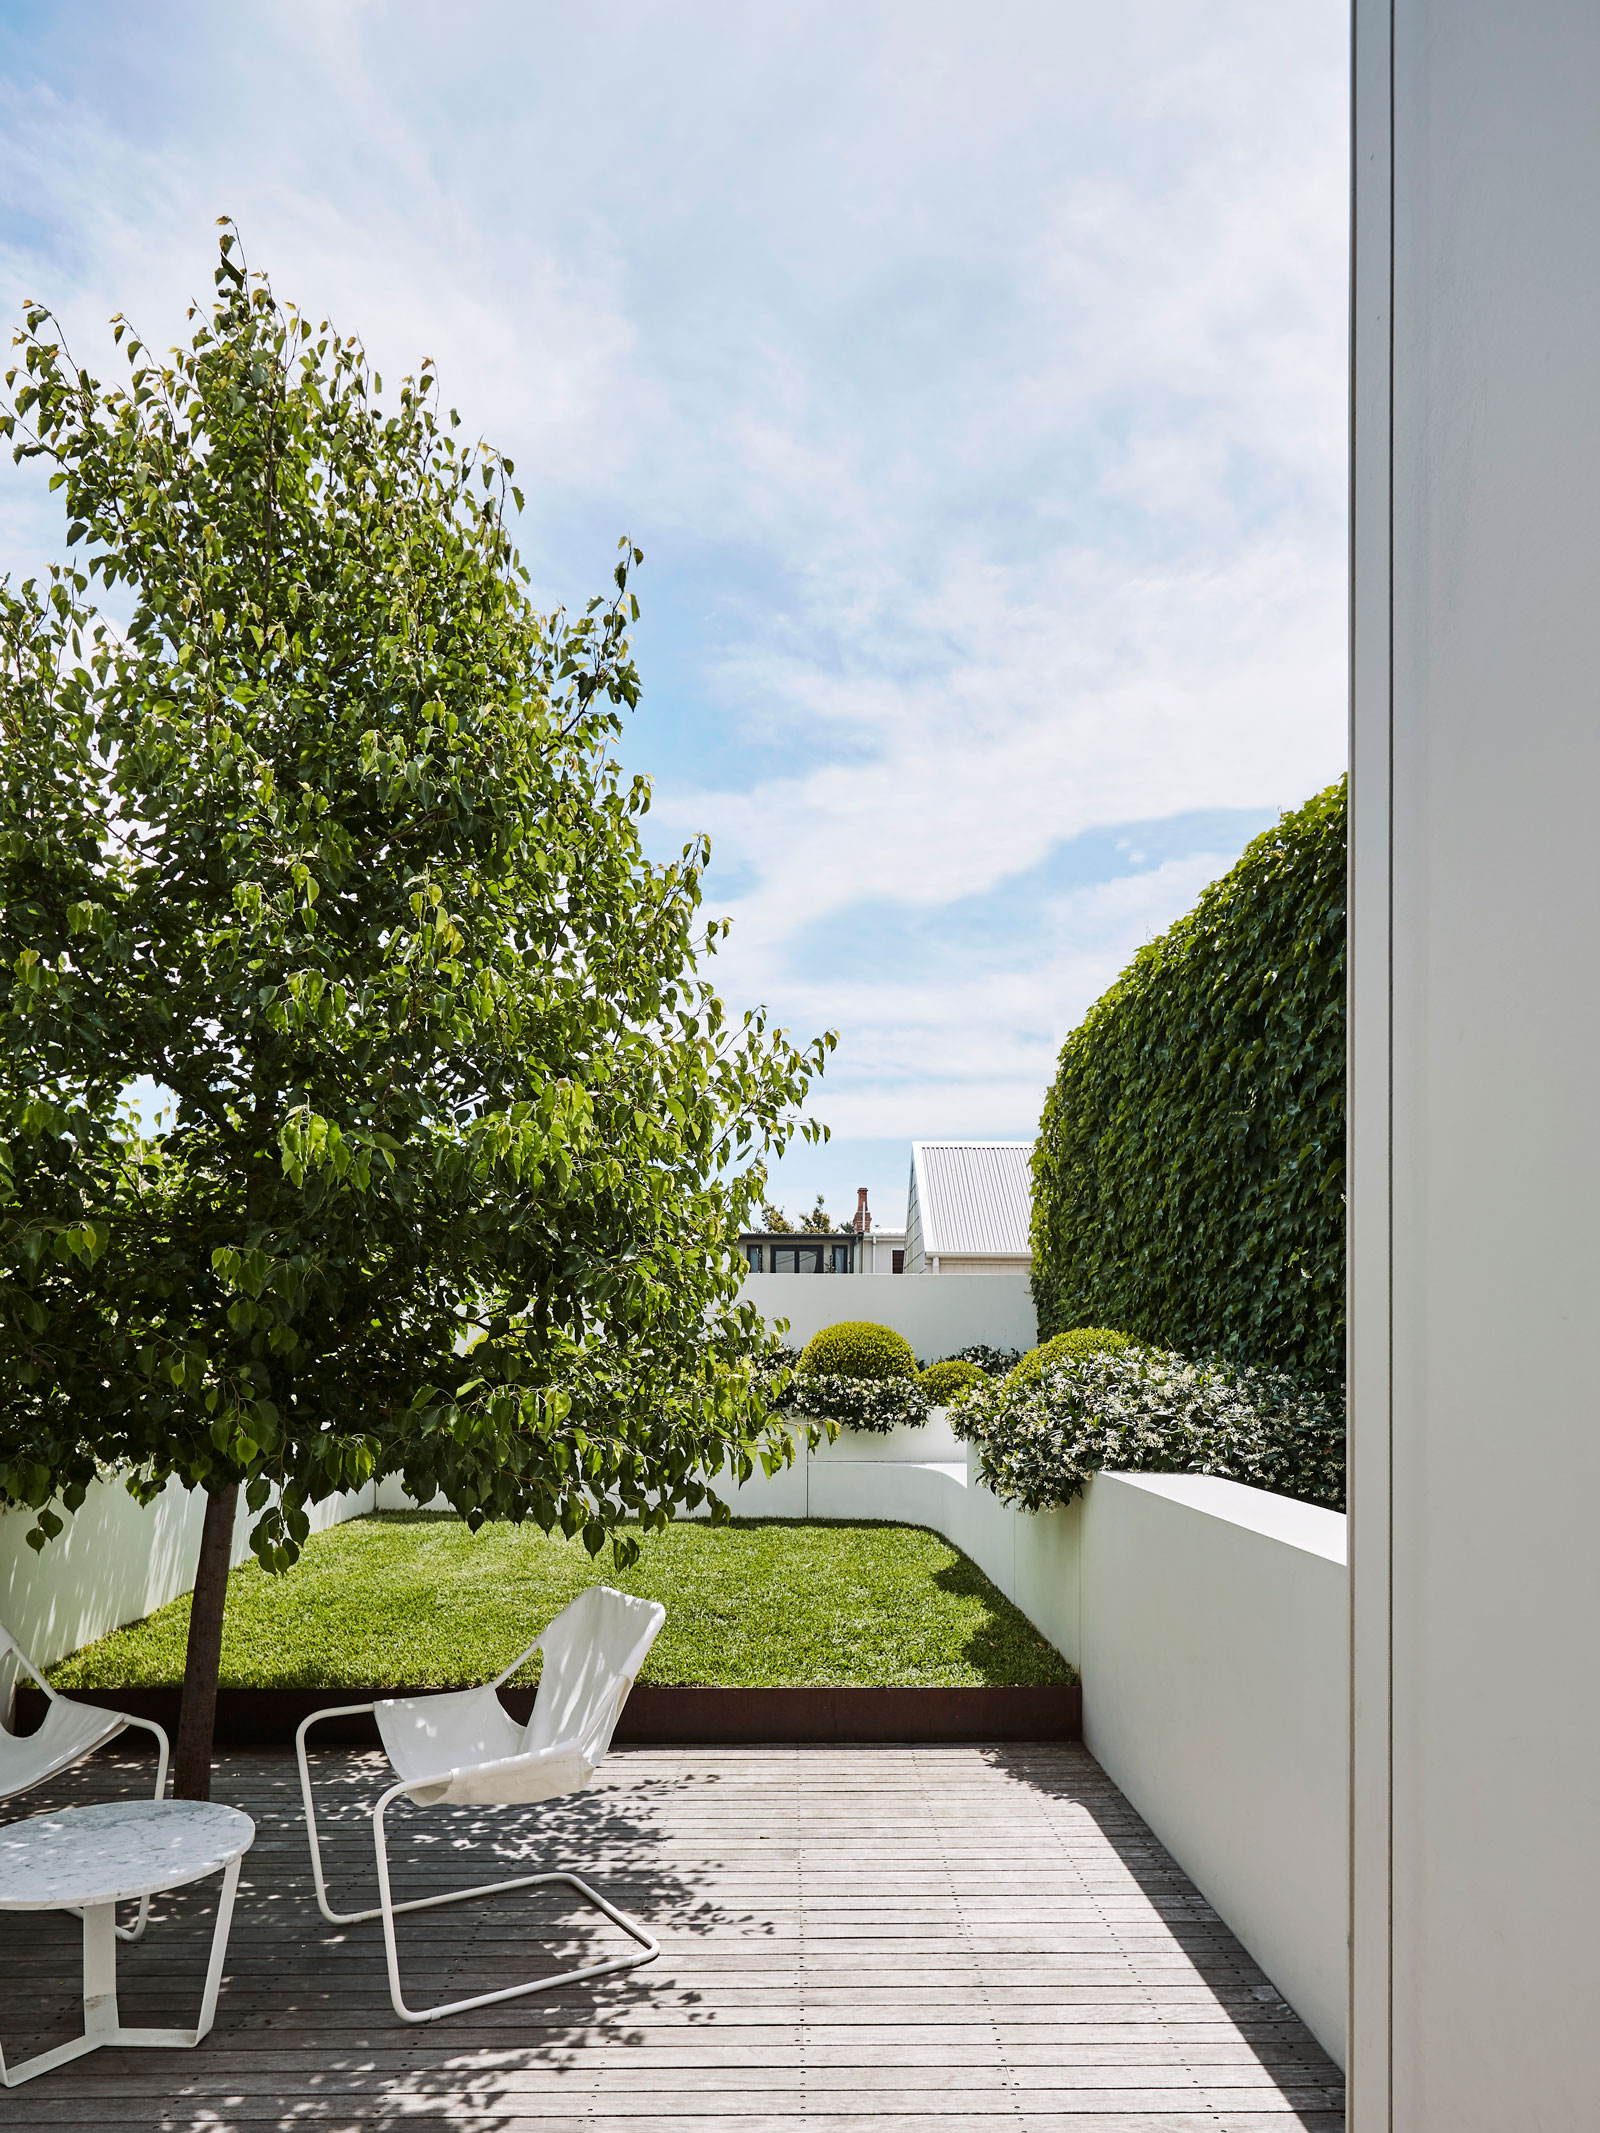 Smart Design Studio Have Breathed Fresh Life Into This Existing Terrace, And Cleverly Used Cues From The Existing Formality To Inform A Seamless